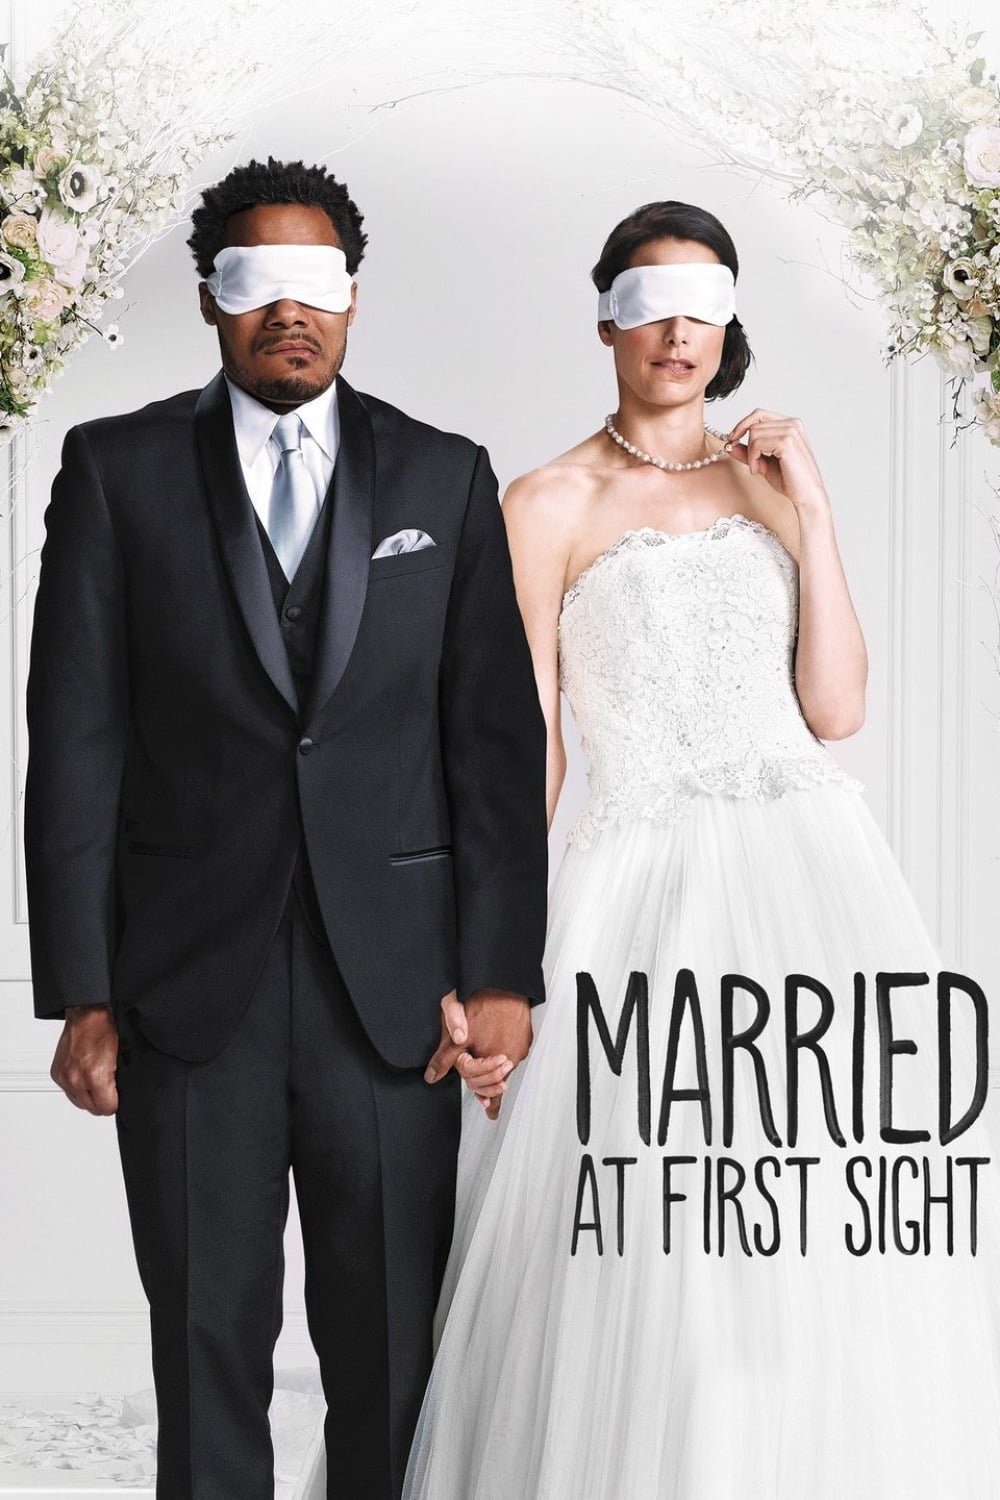 Married at First Sight UK Season 6 123Movies